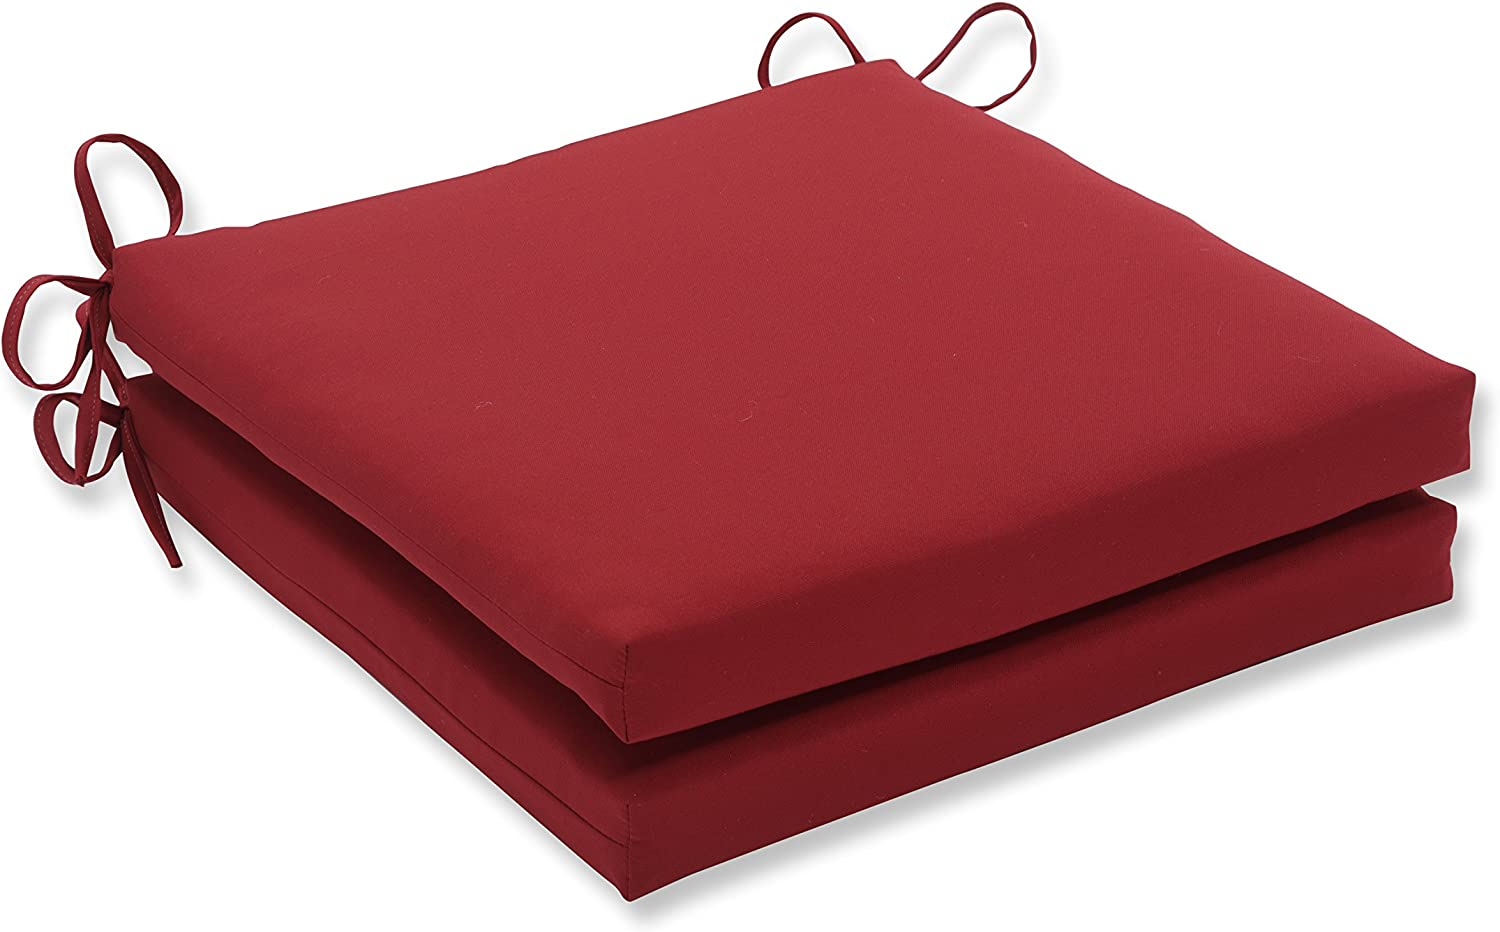 Pillow Perfect Outdoor/Indoor Pompeii Red Squared Corners Seat Cushion 20x20x3 (Set of 2)